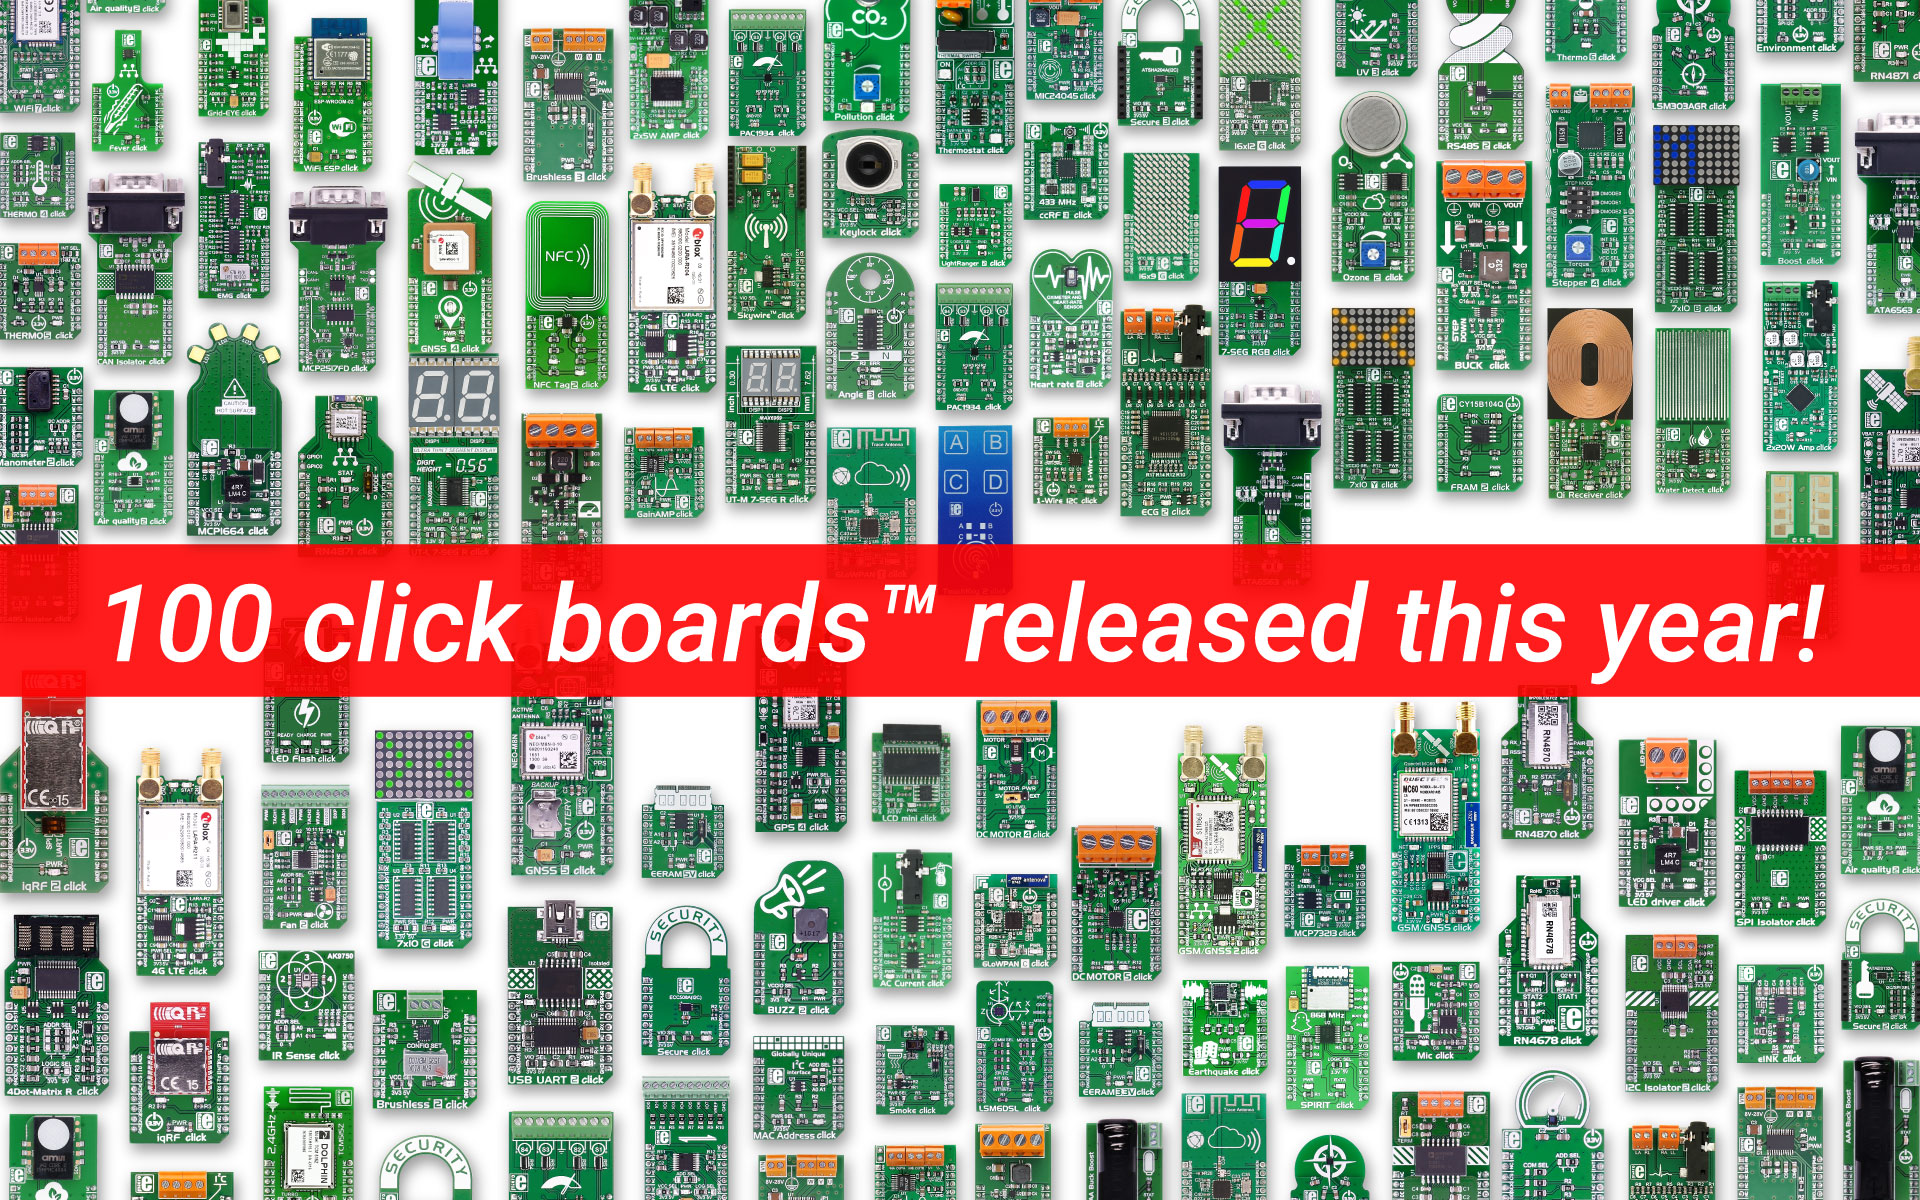 100 click boards™ released this year!